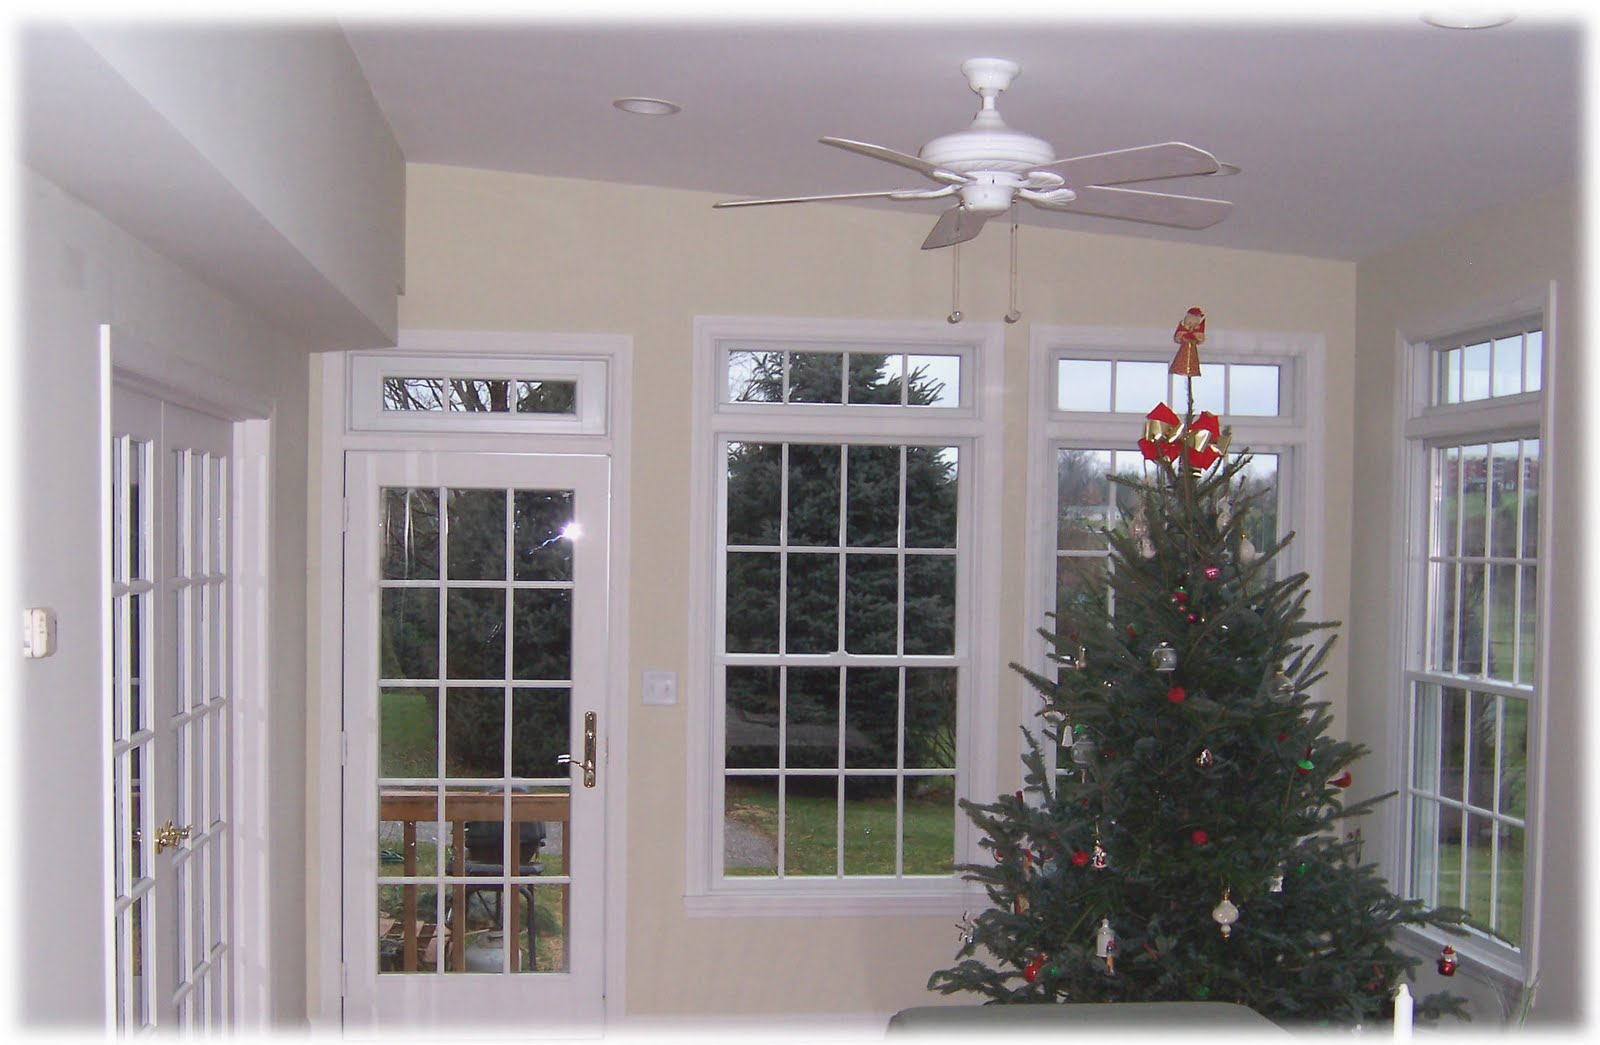 All about window window designs modern or old fashioned for New windows for your home